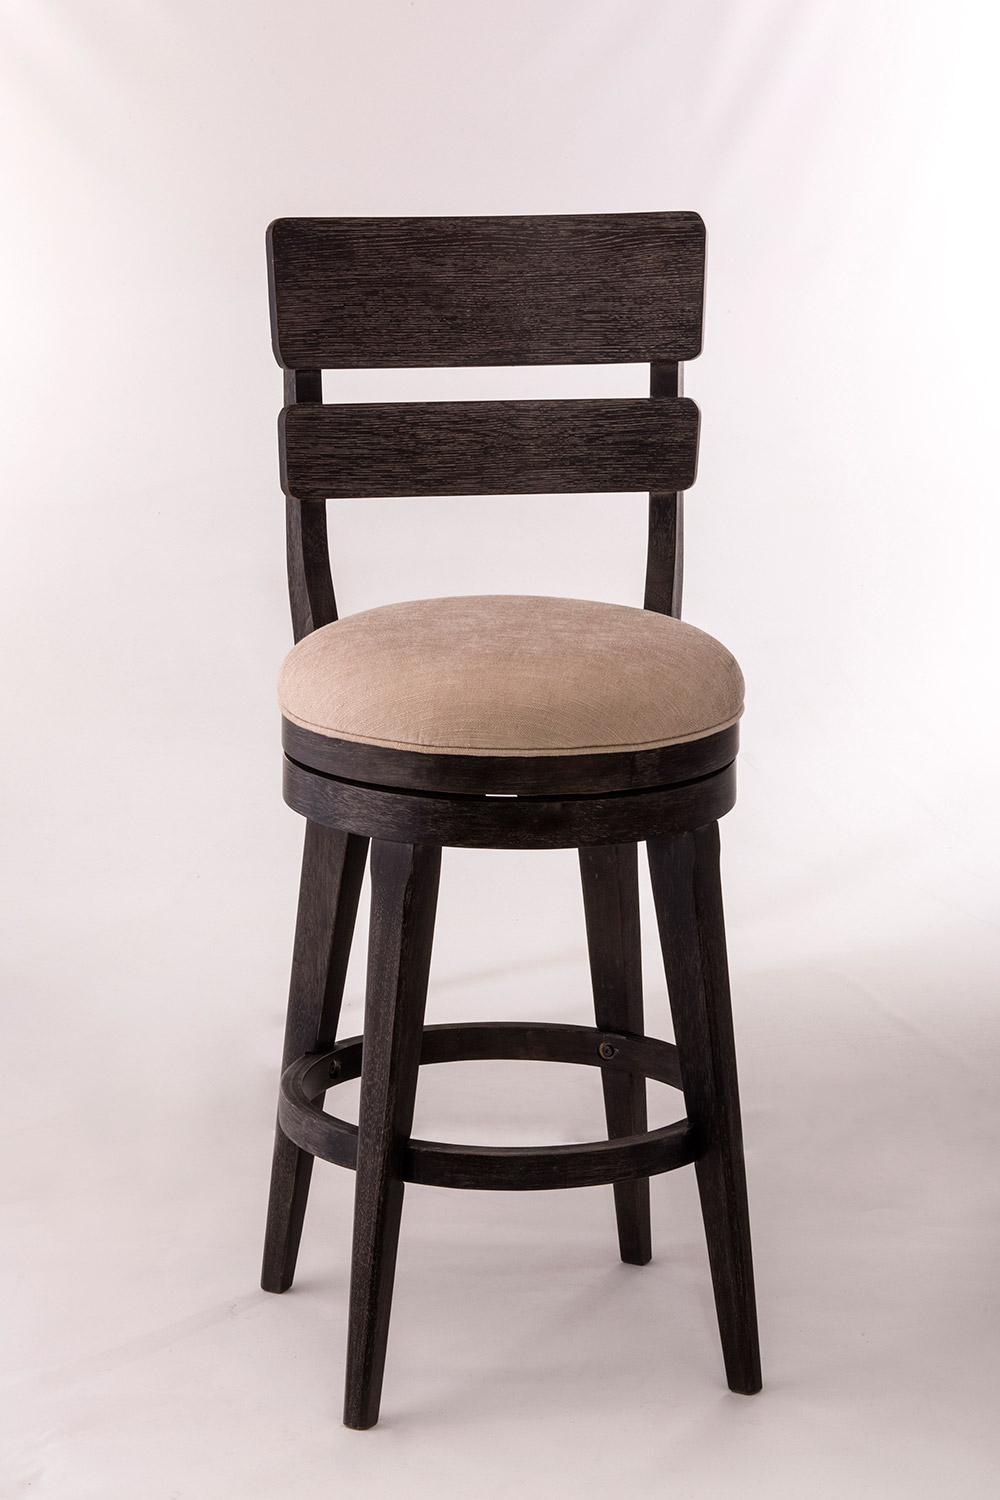 Hillsdale LeClair Swivel Counter Stool - Black